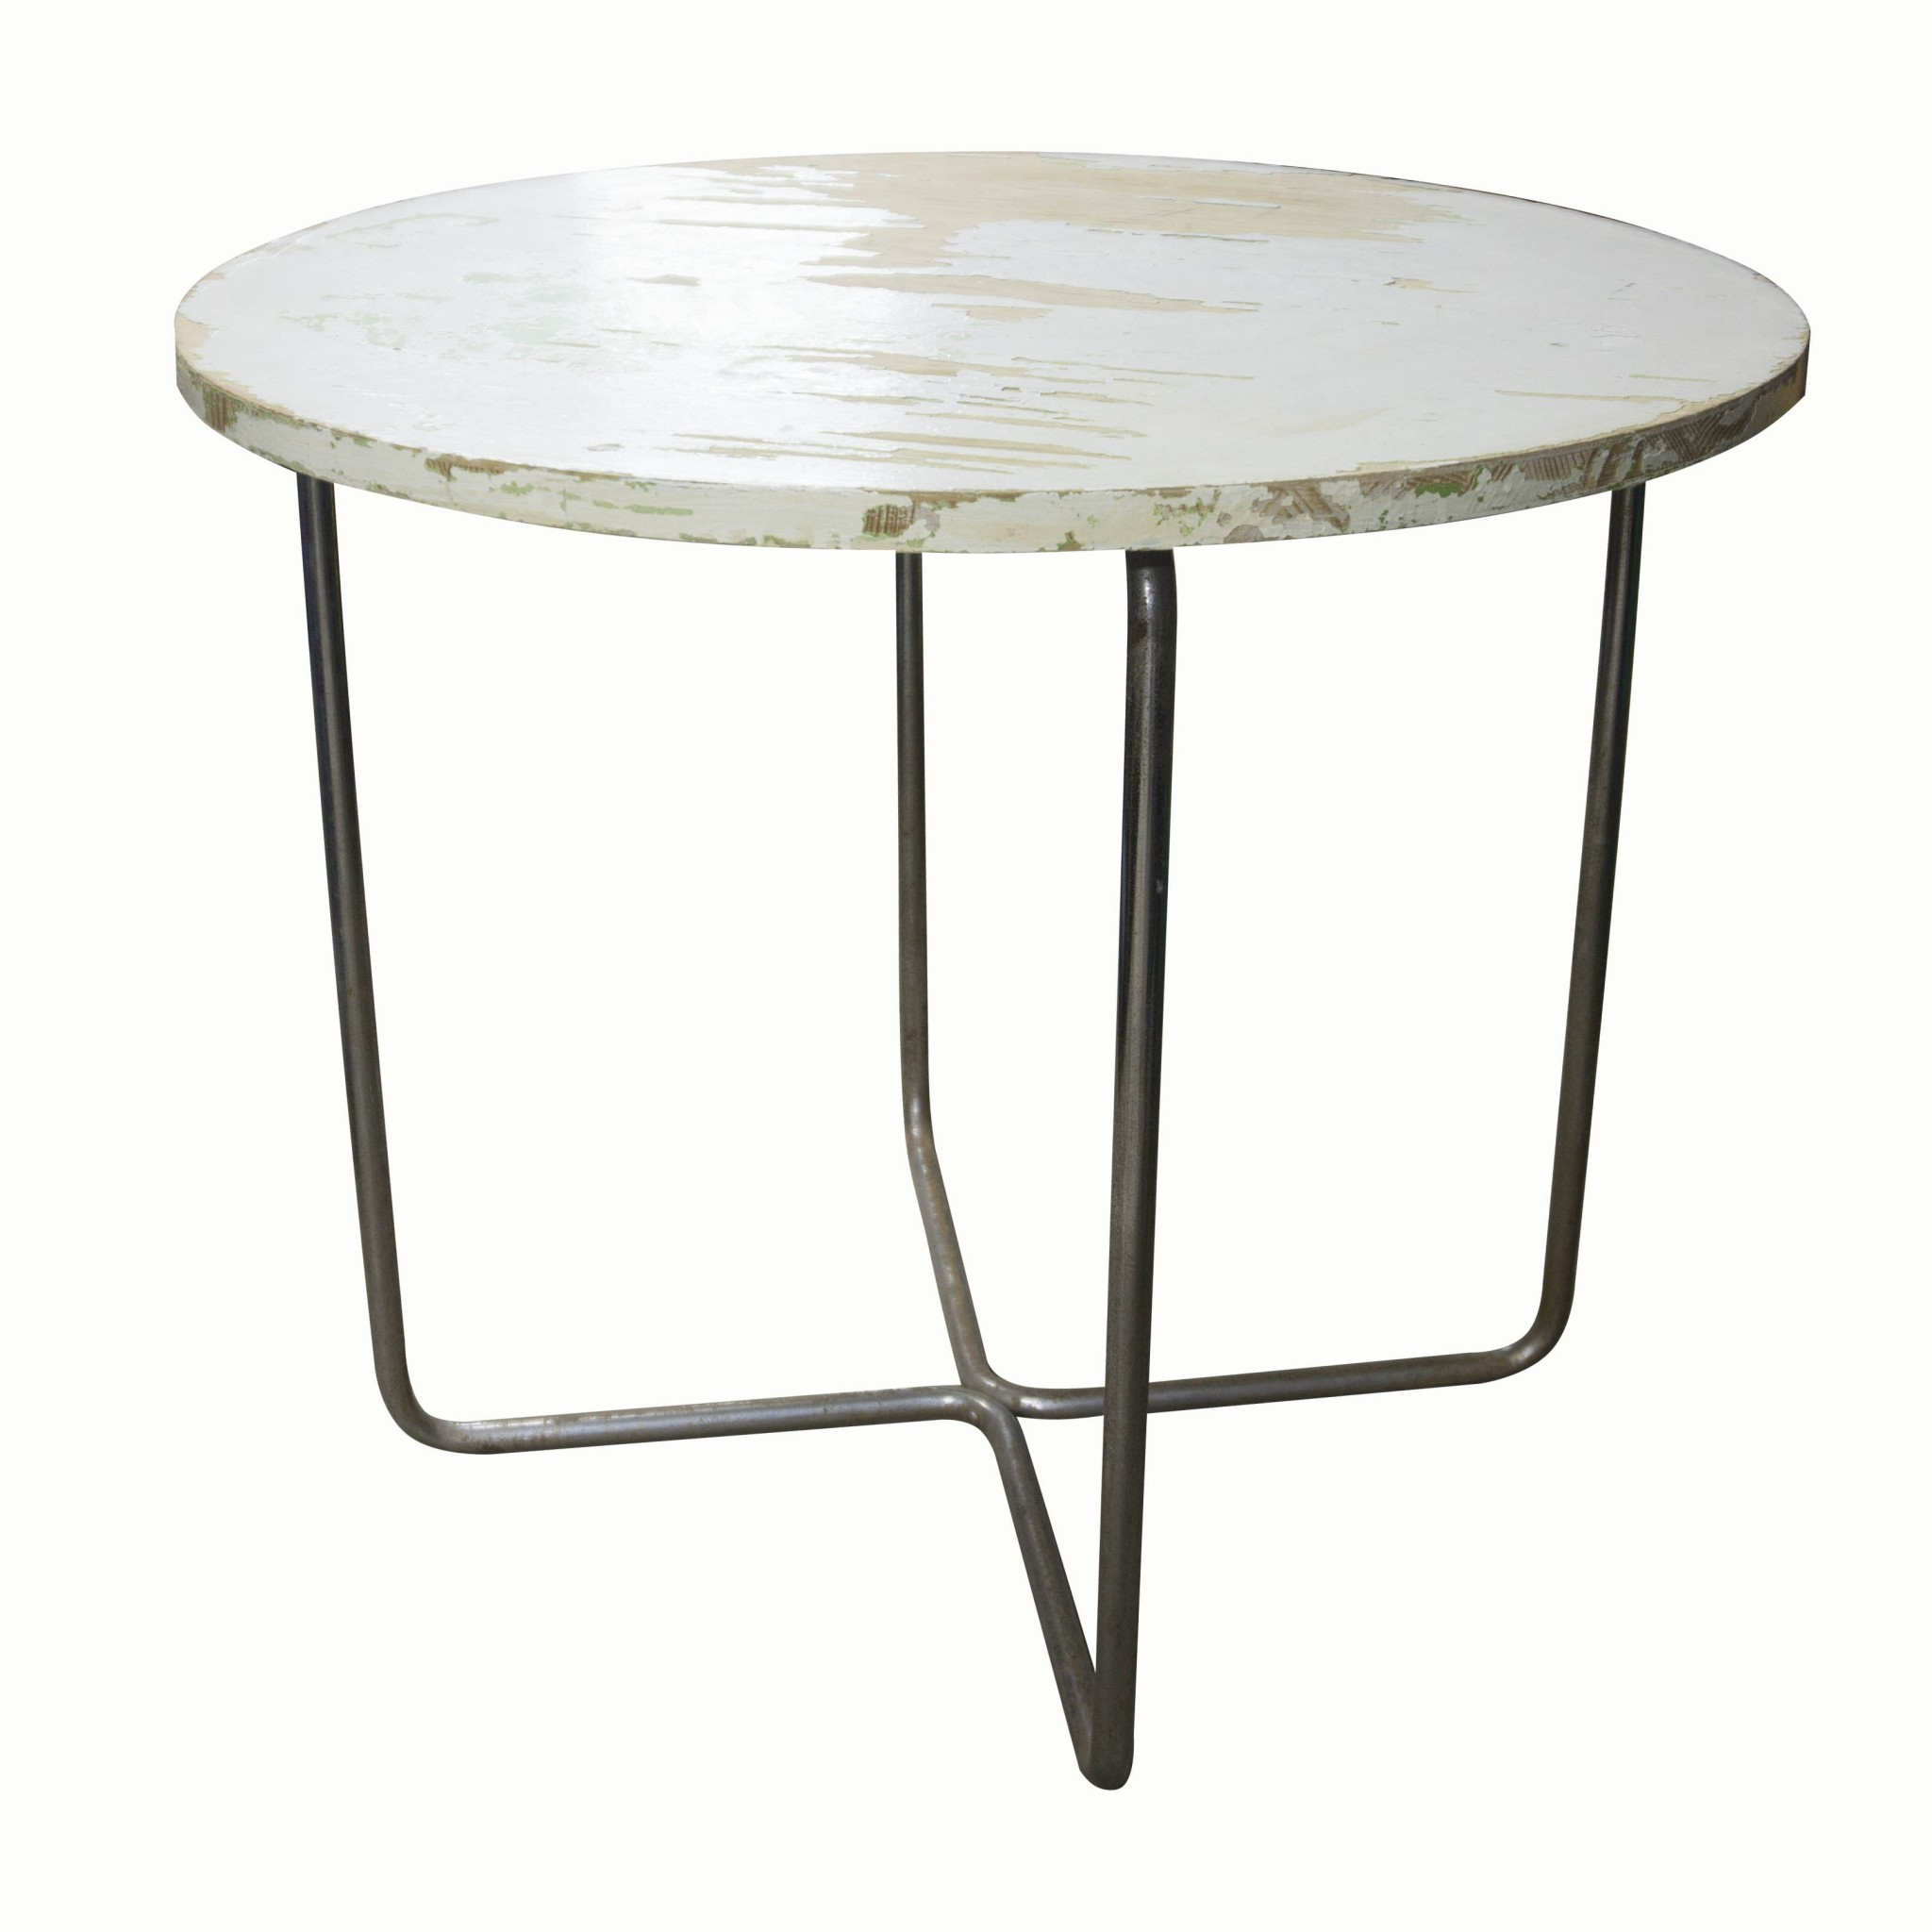 Marcel breuer table b27 designed in 1928 your20th lightbox geotapseo Choice Image